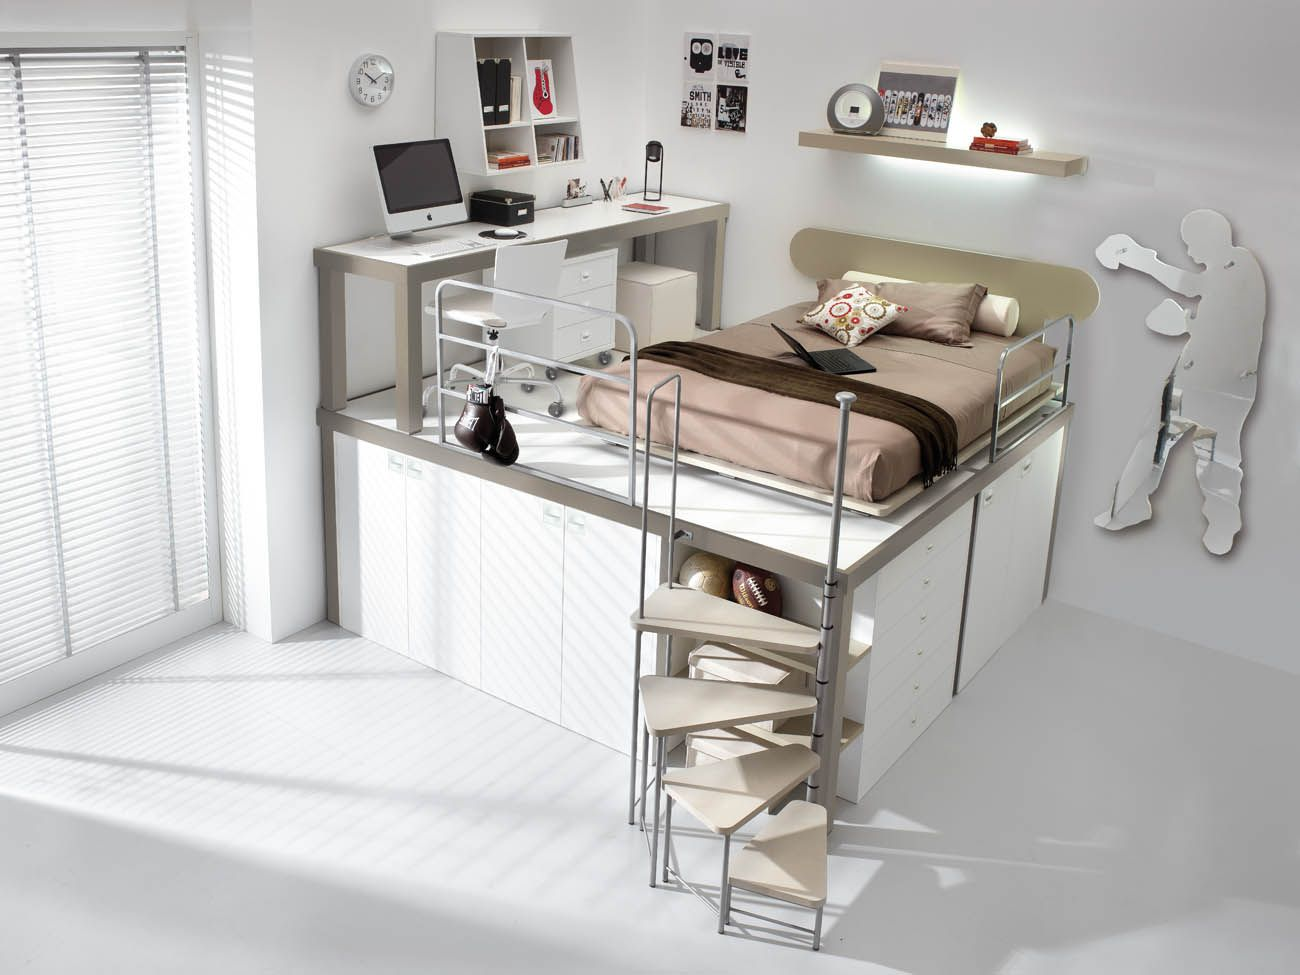 Teenage loft bedroom designs  Tumidei Spa could you image a dorm room like tthis  Ideas for the